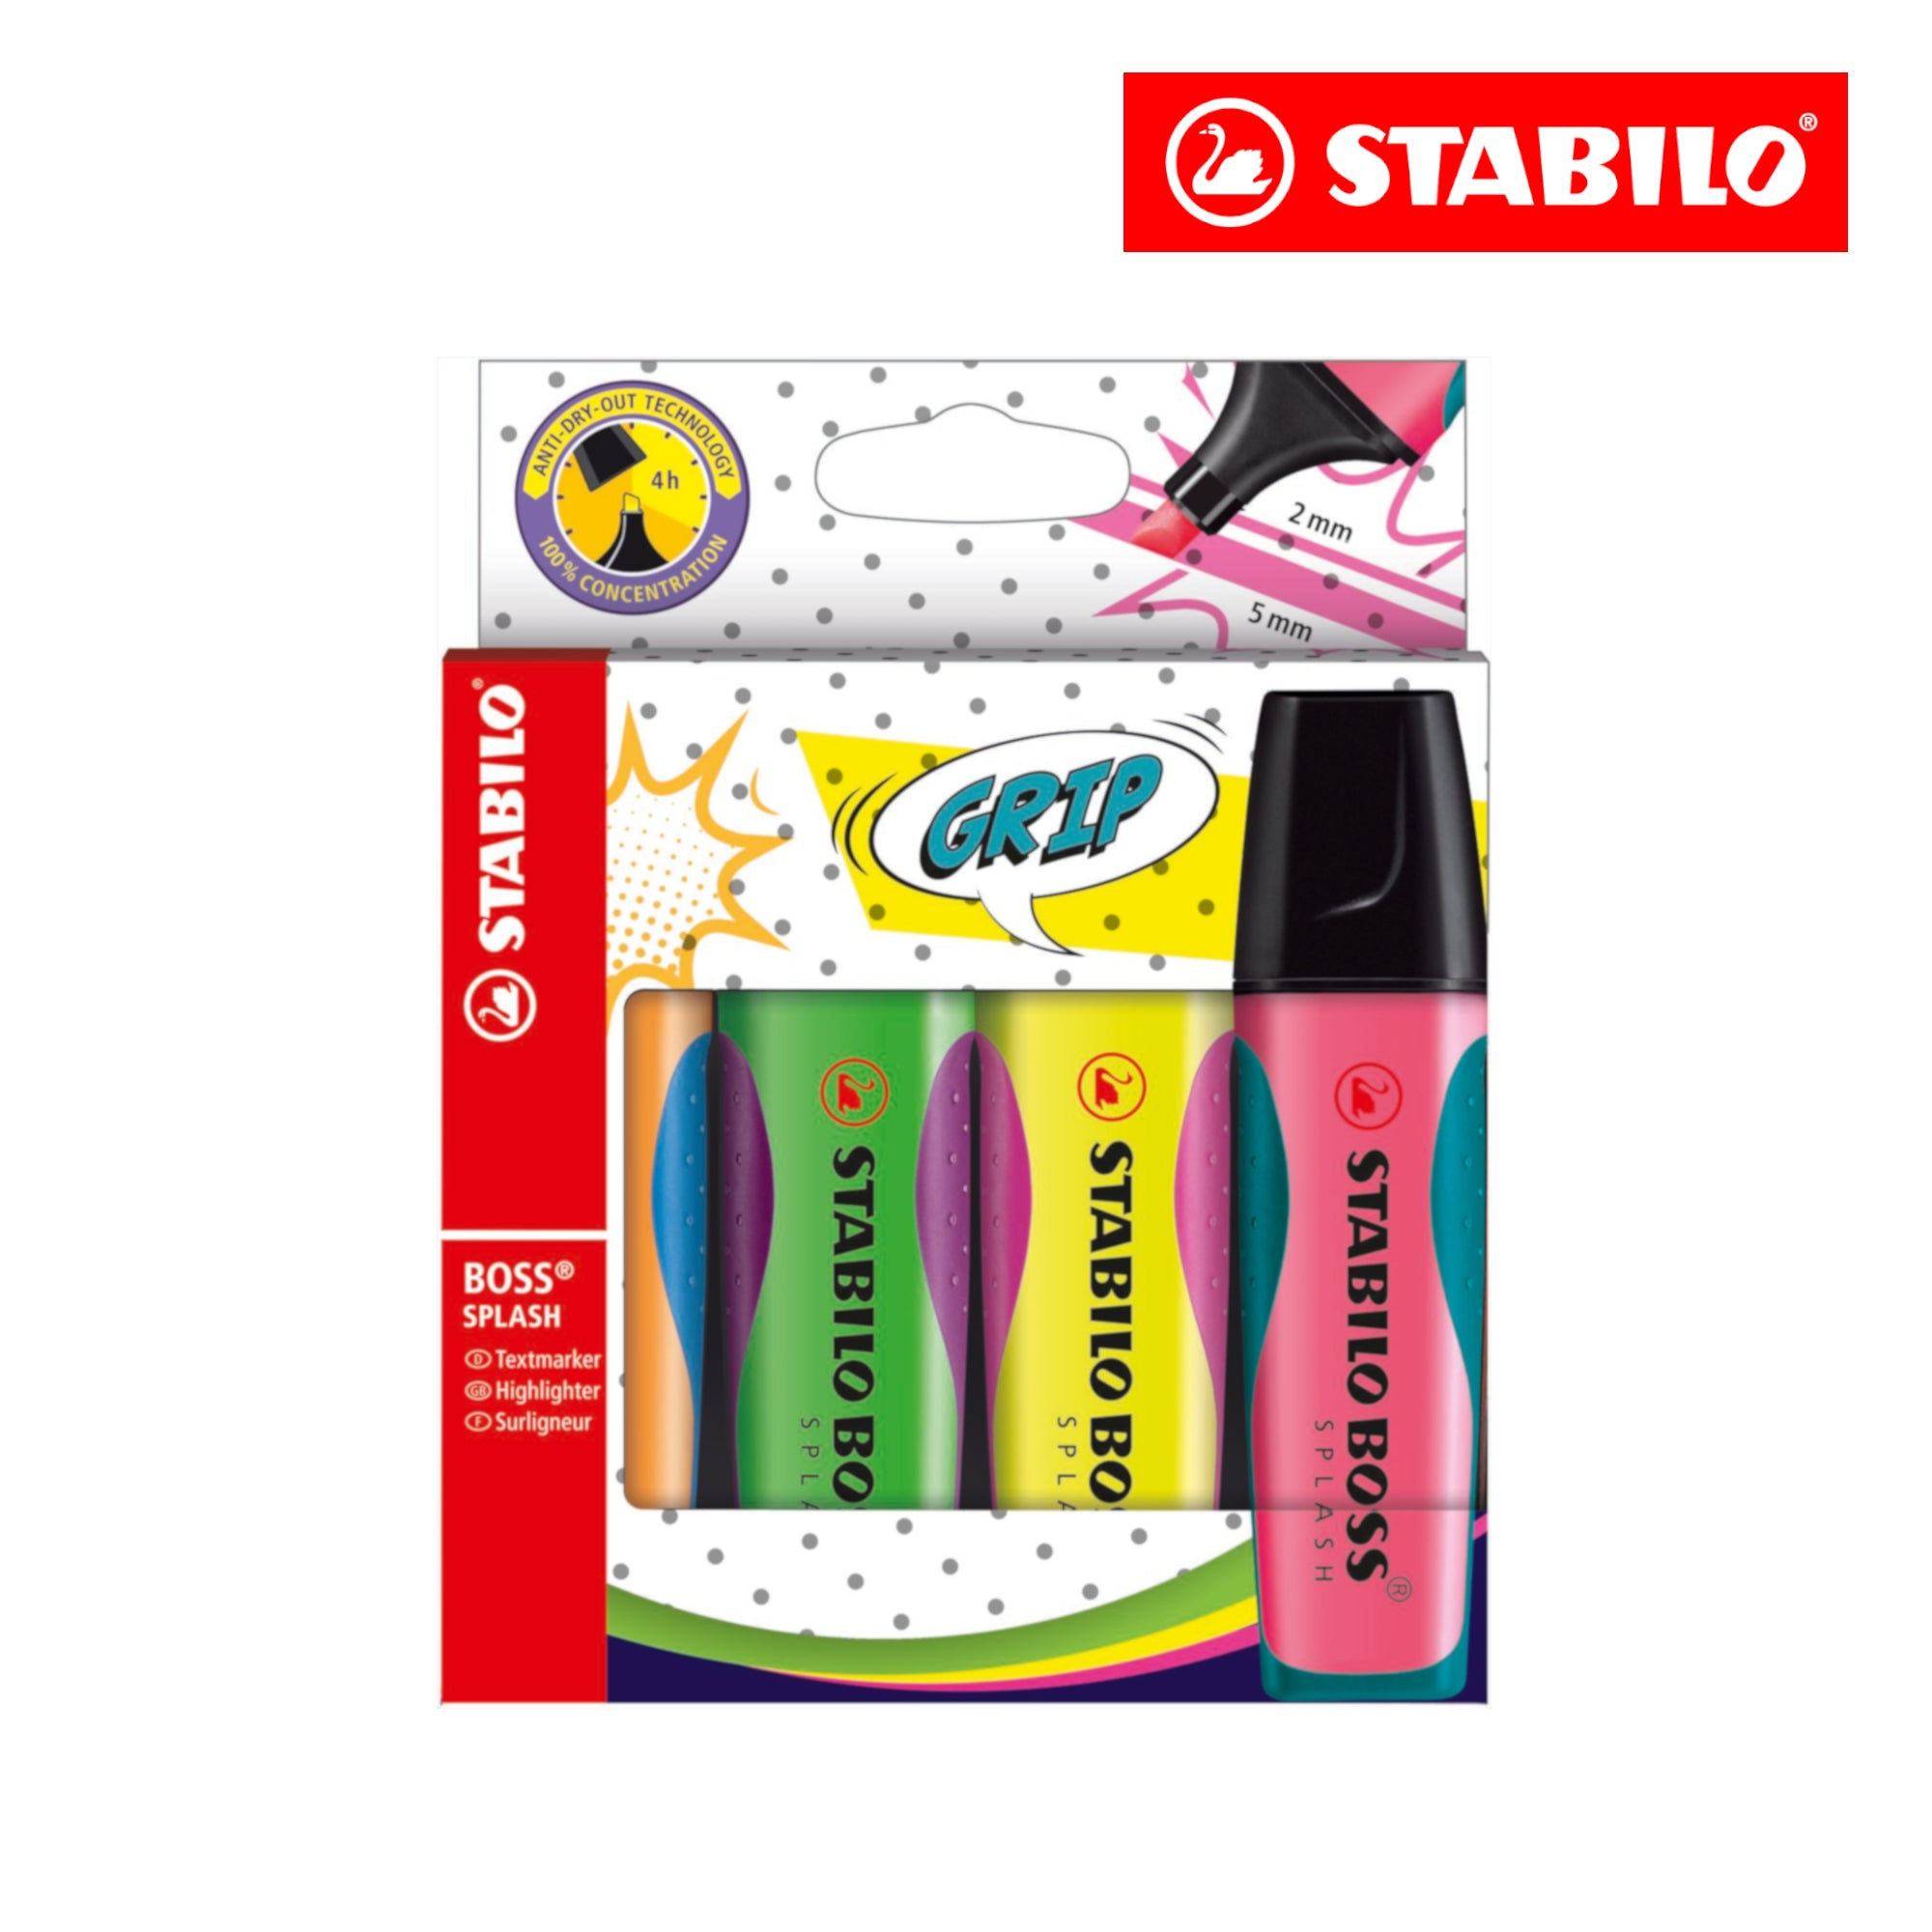 STABILO BOSS SPLASH Highlighter (Set of 4 colours) - Schwan-STABILO -Most colourful Stationery Shop